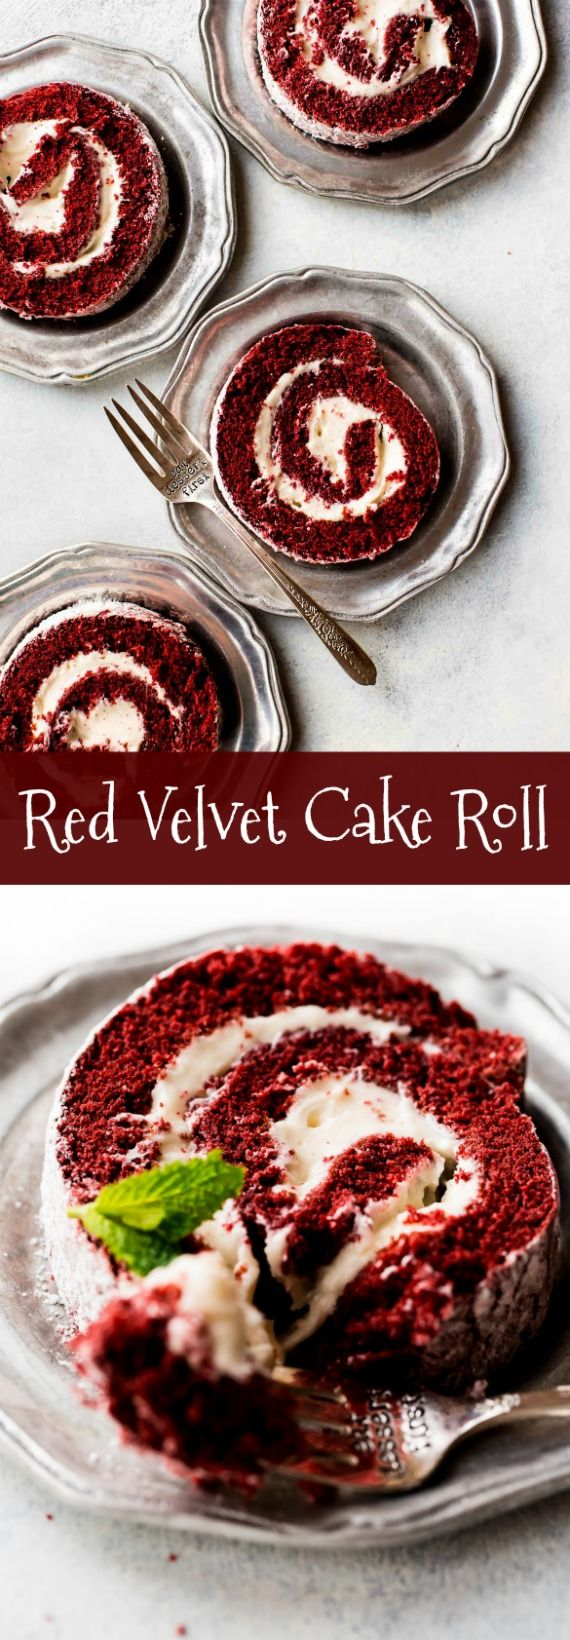 Learn how to make a deliciously soft red velvet cake roll using this step-by-step photo tutorial and recipe! sallysbakingaddiction.com #rollcake